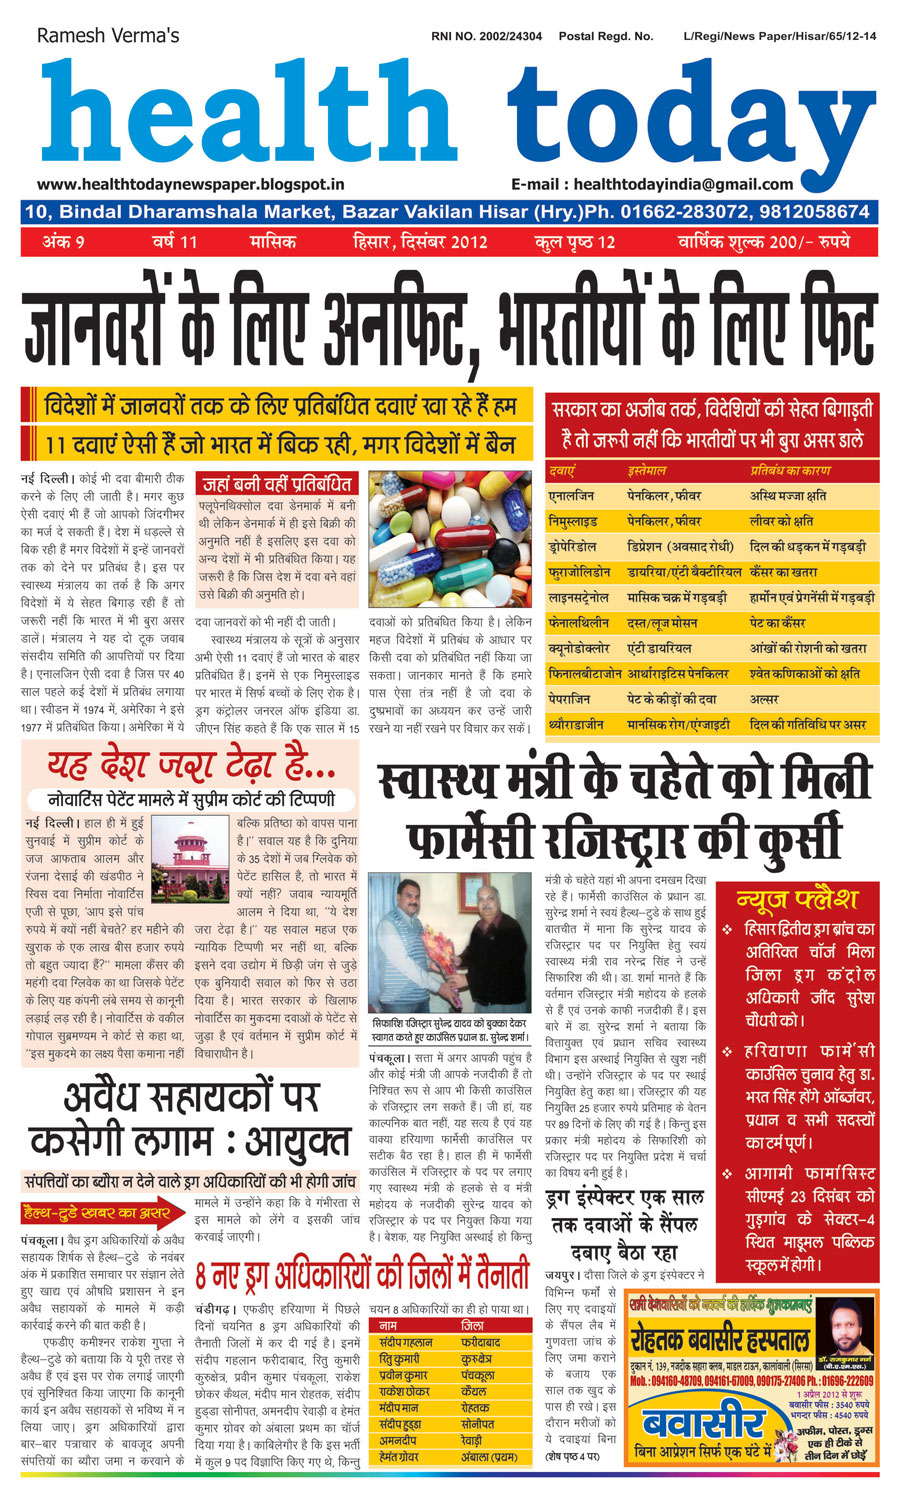 ban medicine in world but use in india new drug officer asistant fda health today india hisar top pharma news medical health pharmacy registrar haryana surender yadav